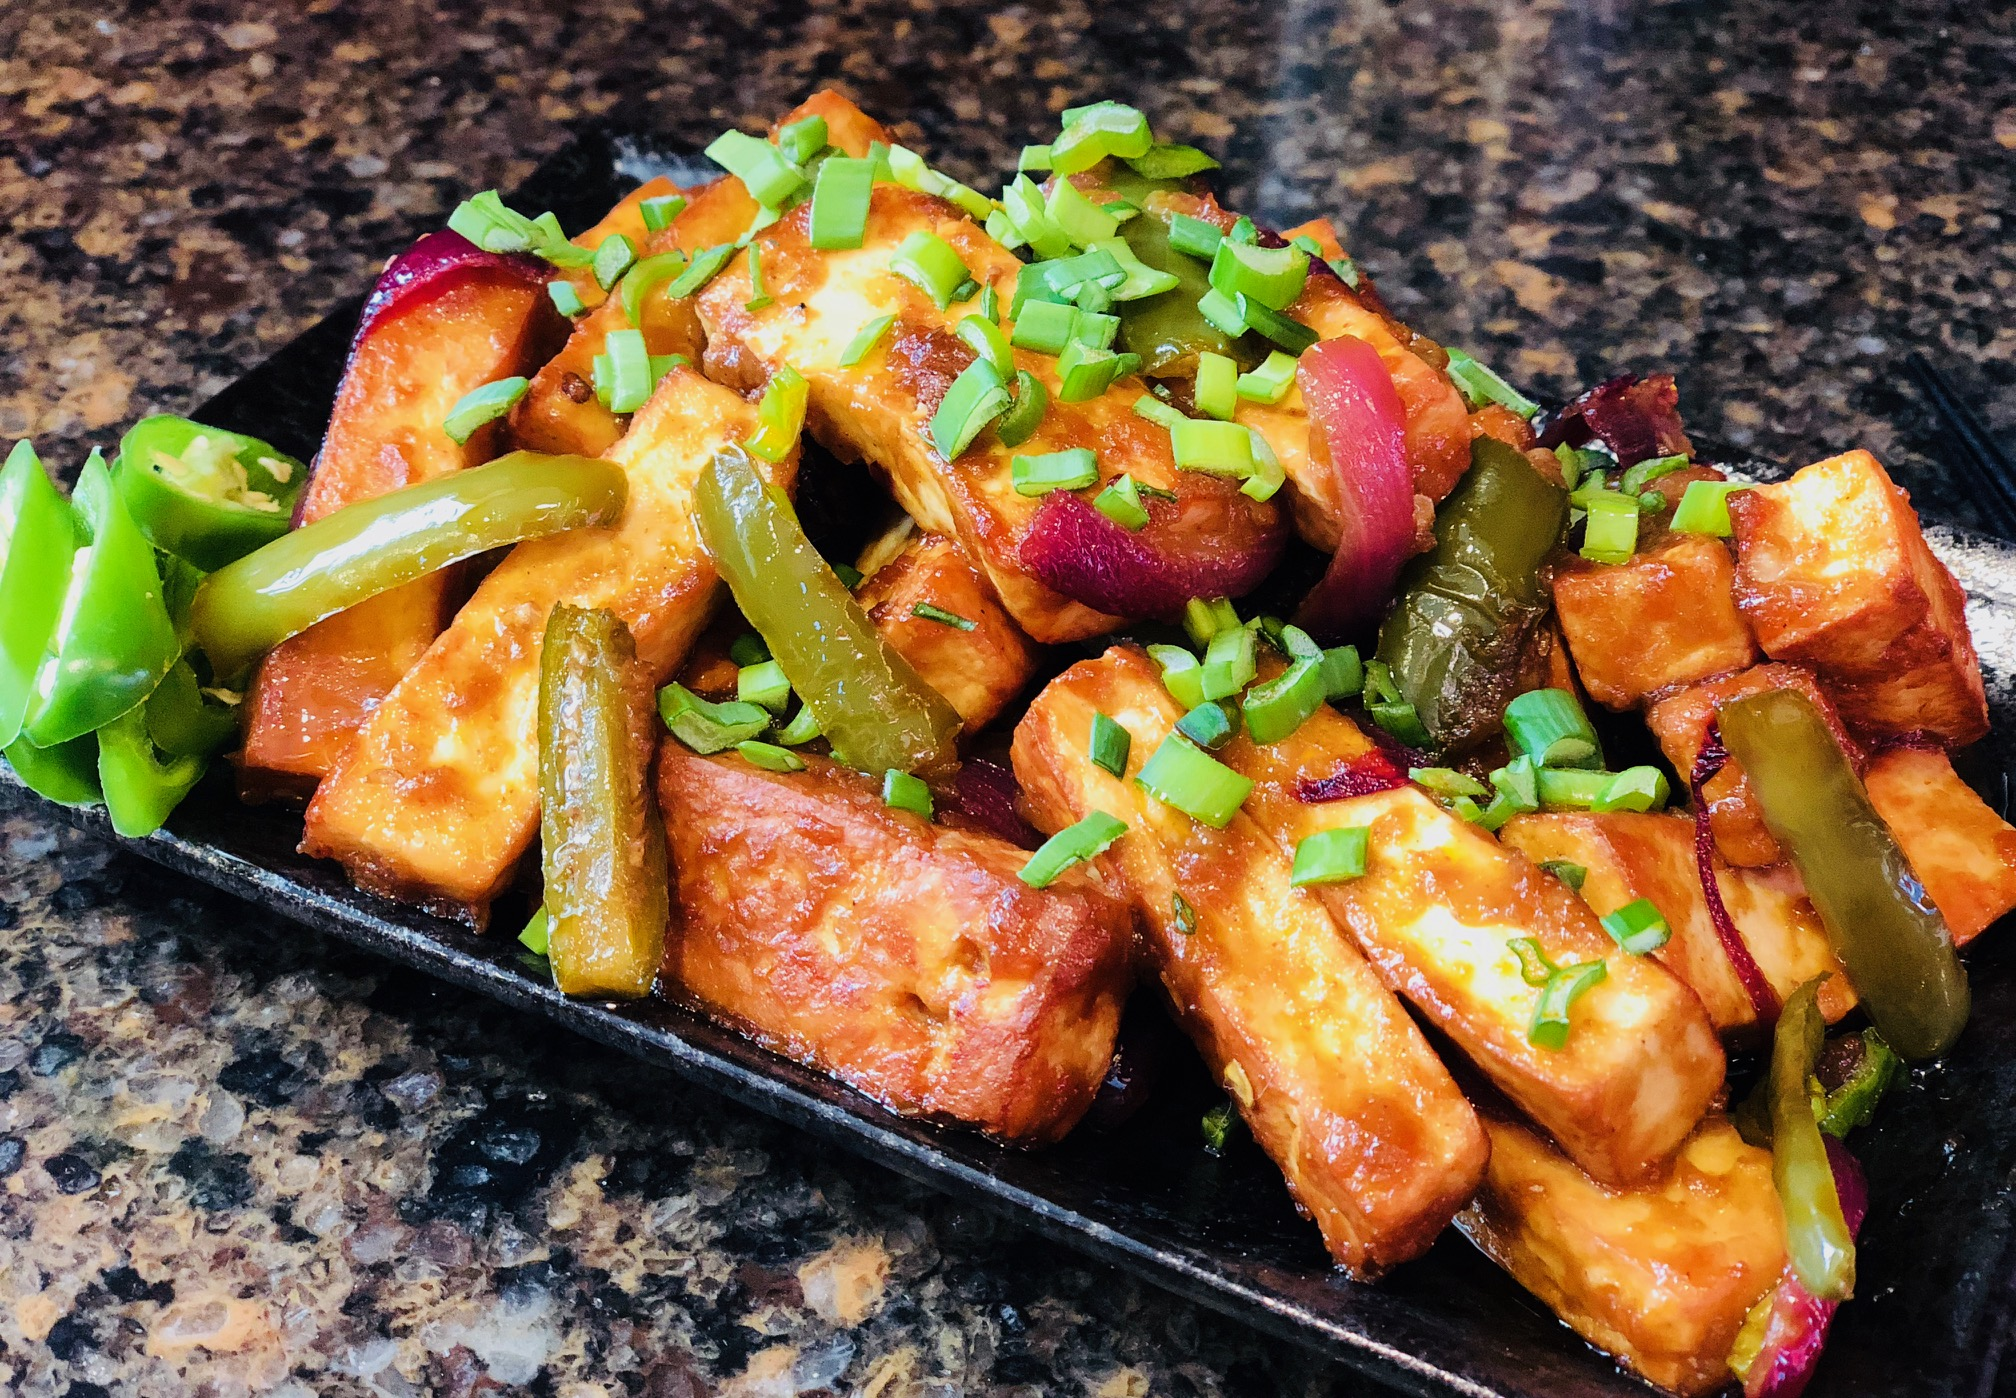 Paneer cubes long rectangles for paneer chili indo fusion recipe indian popular chinese food recipe spicy fusion recipe fried paneer fry pan garlic ginger